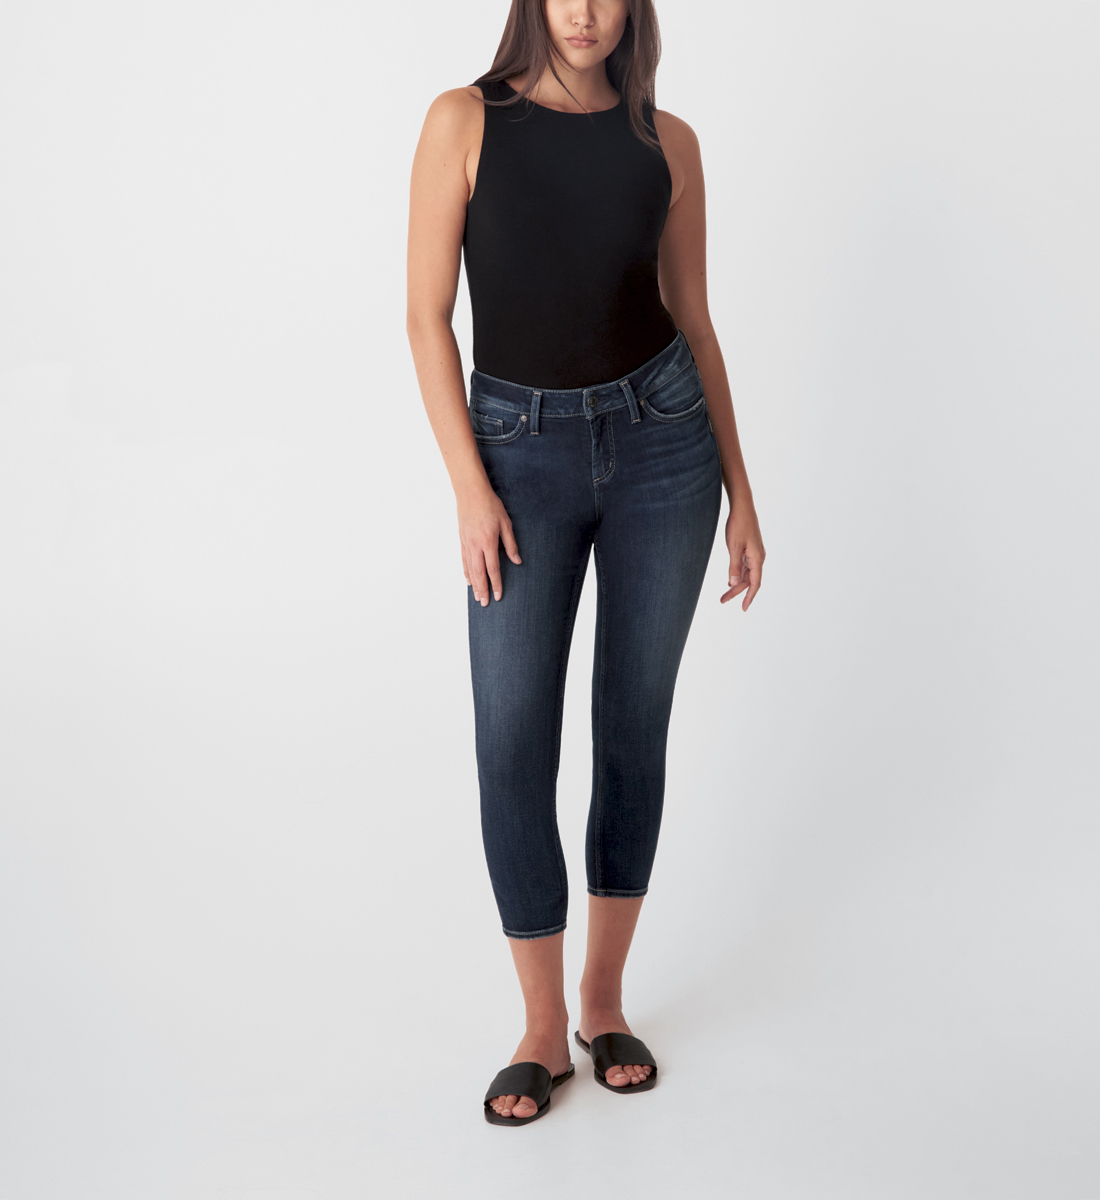 Silver Jeans Elyse Mid Rise Skinny Crop Jeans